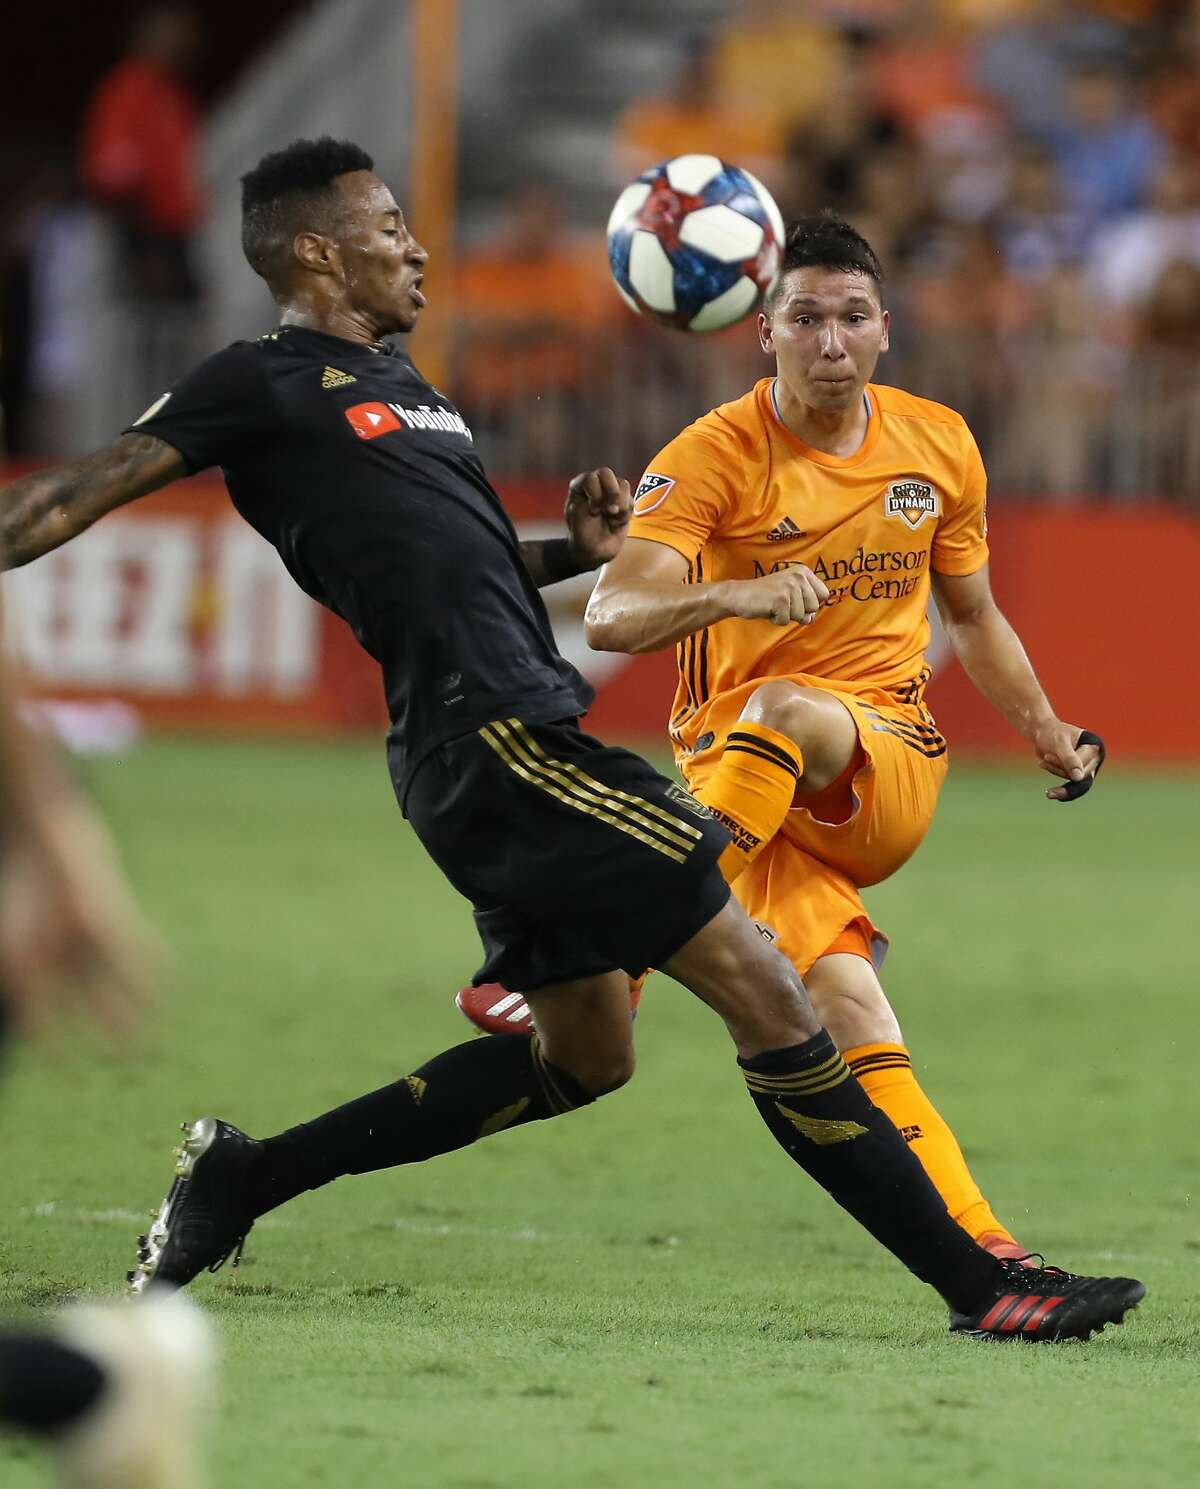 Los Angeles FC midfielder Mark-Anthony Kaye (14) attempts to stop a kick by Houston Dynamo midfielder Tomas Martinez (10) during the first half of an MLS soccer match Friday, July 12, 2019, in Houston.